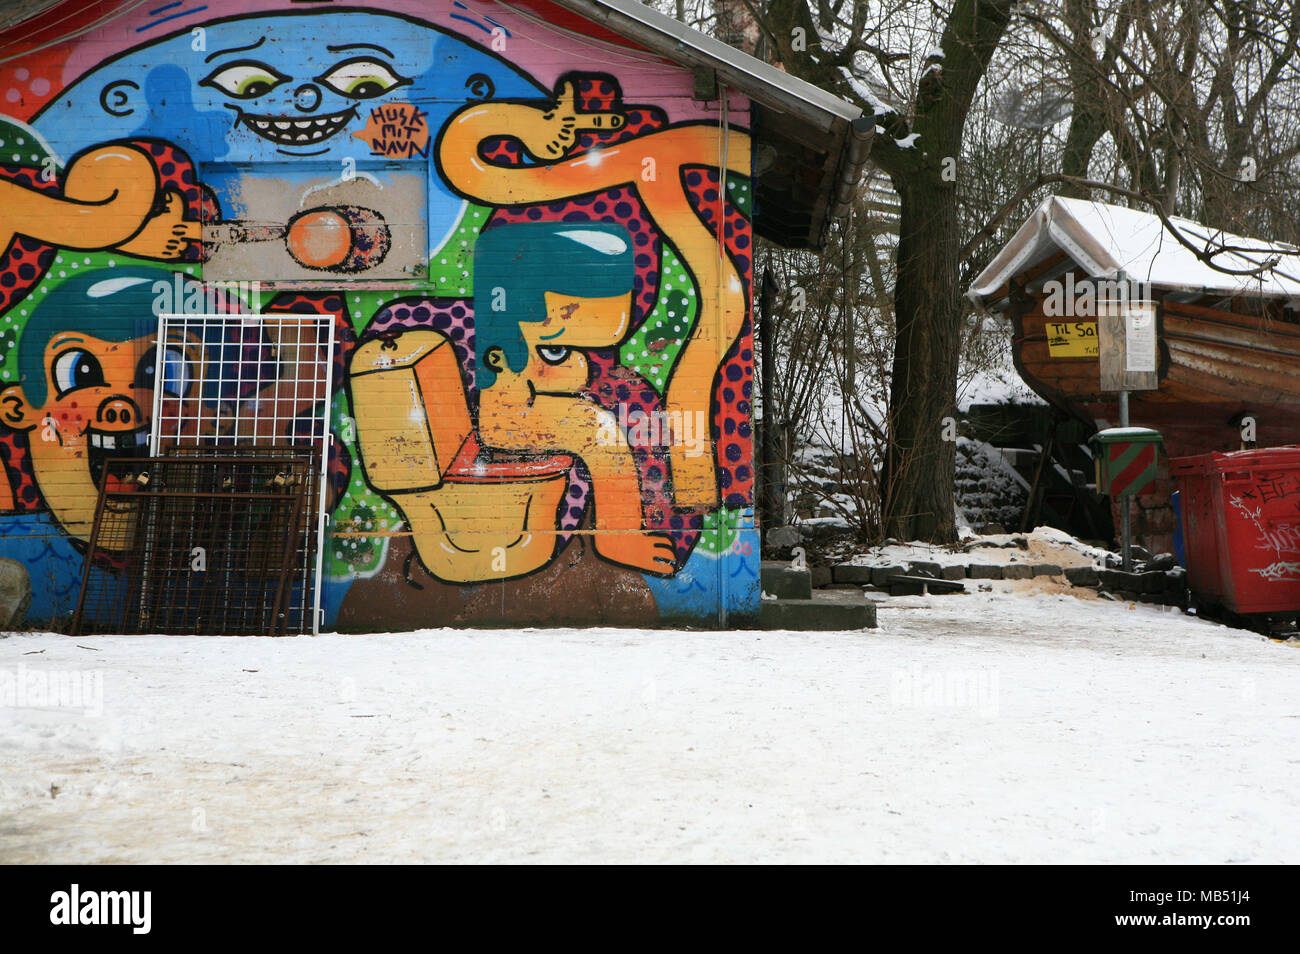 Maison de fantaisie avec graffiti à Christiania, Copenhague, Danemark Photo Stock